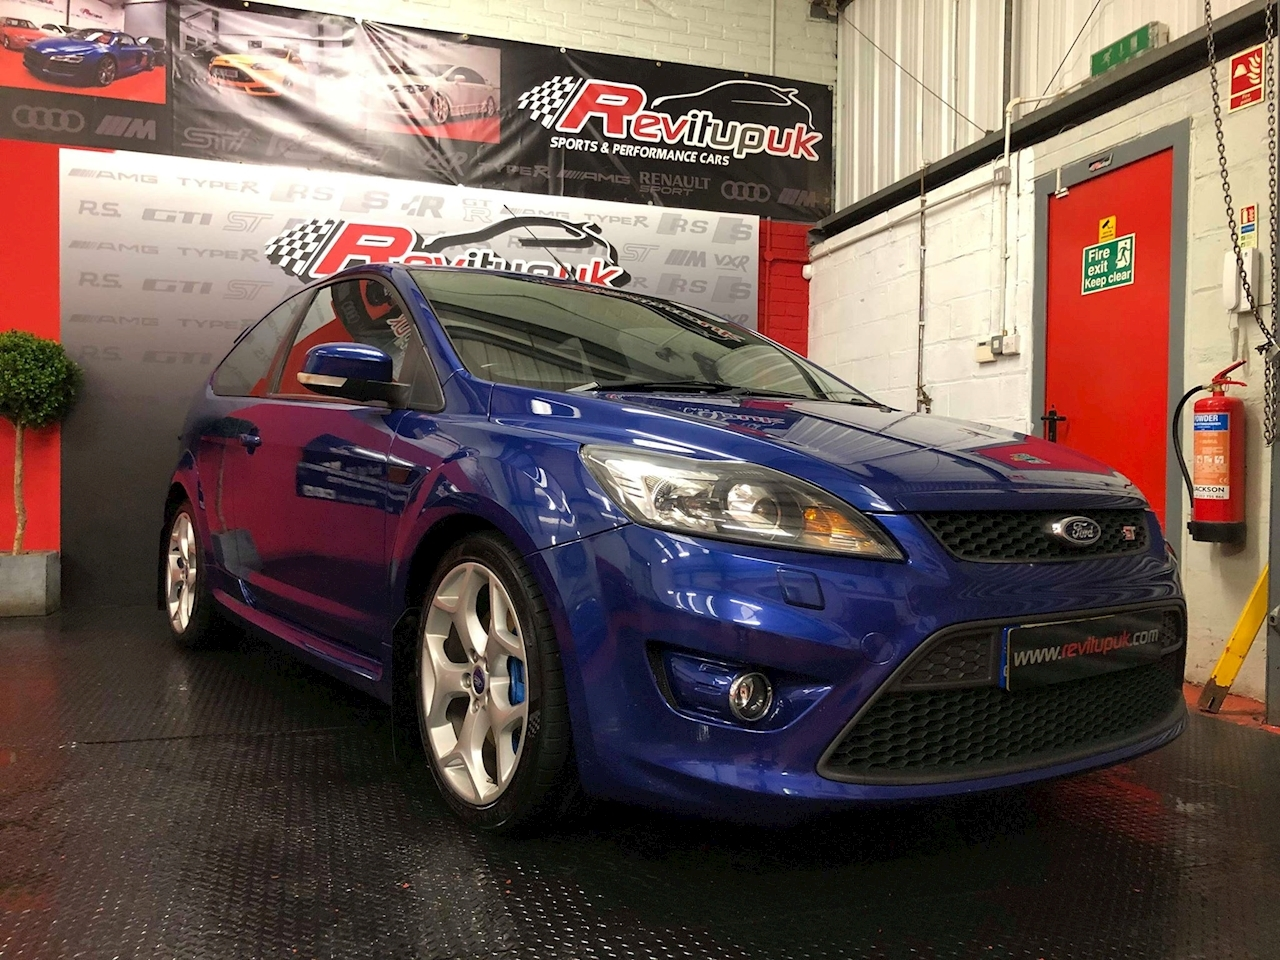 2008 ford focus cl lt auto owners manual